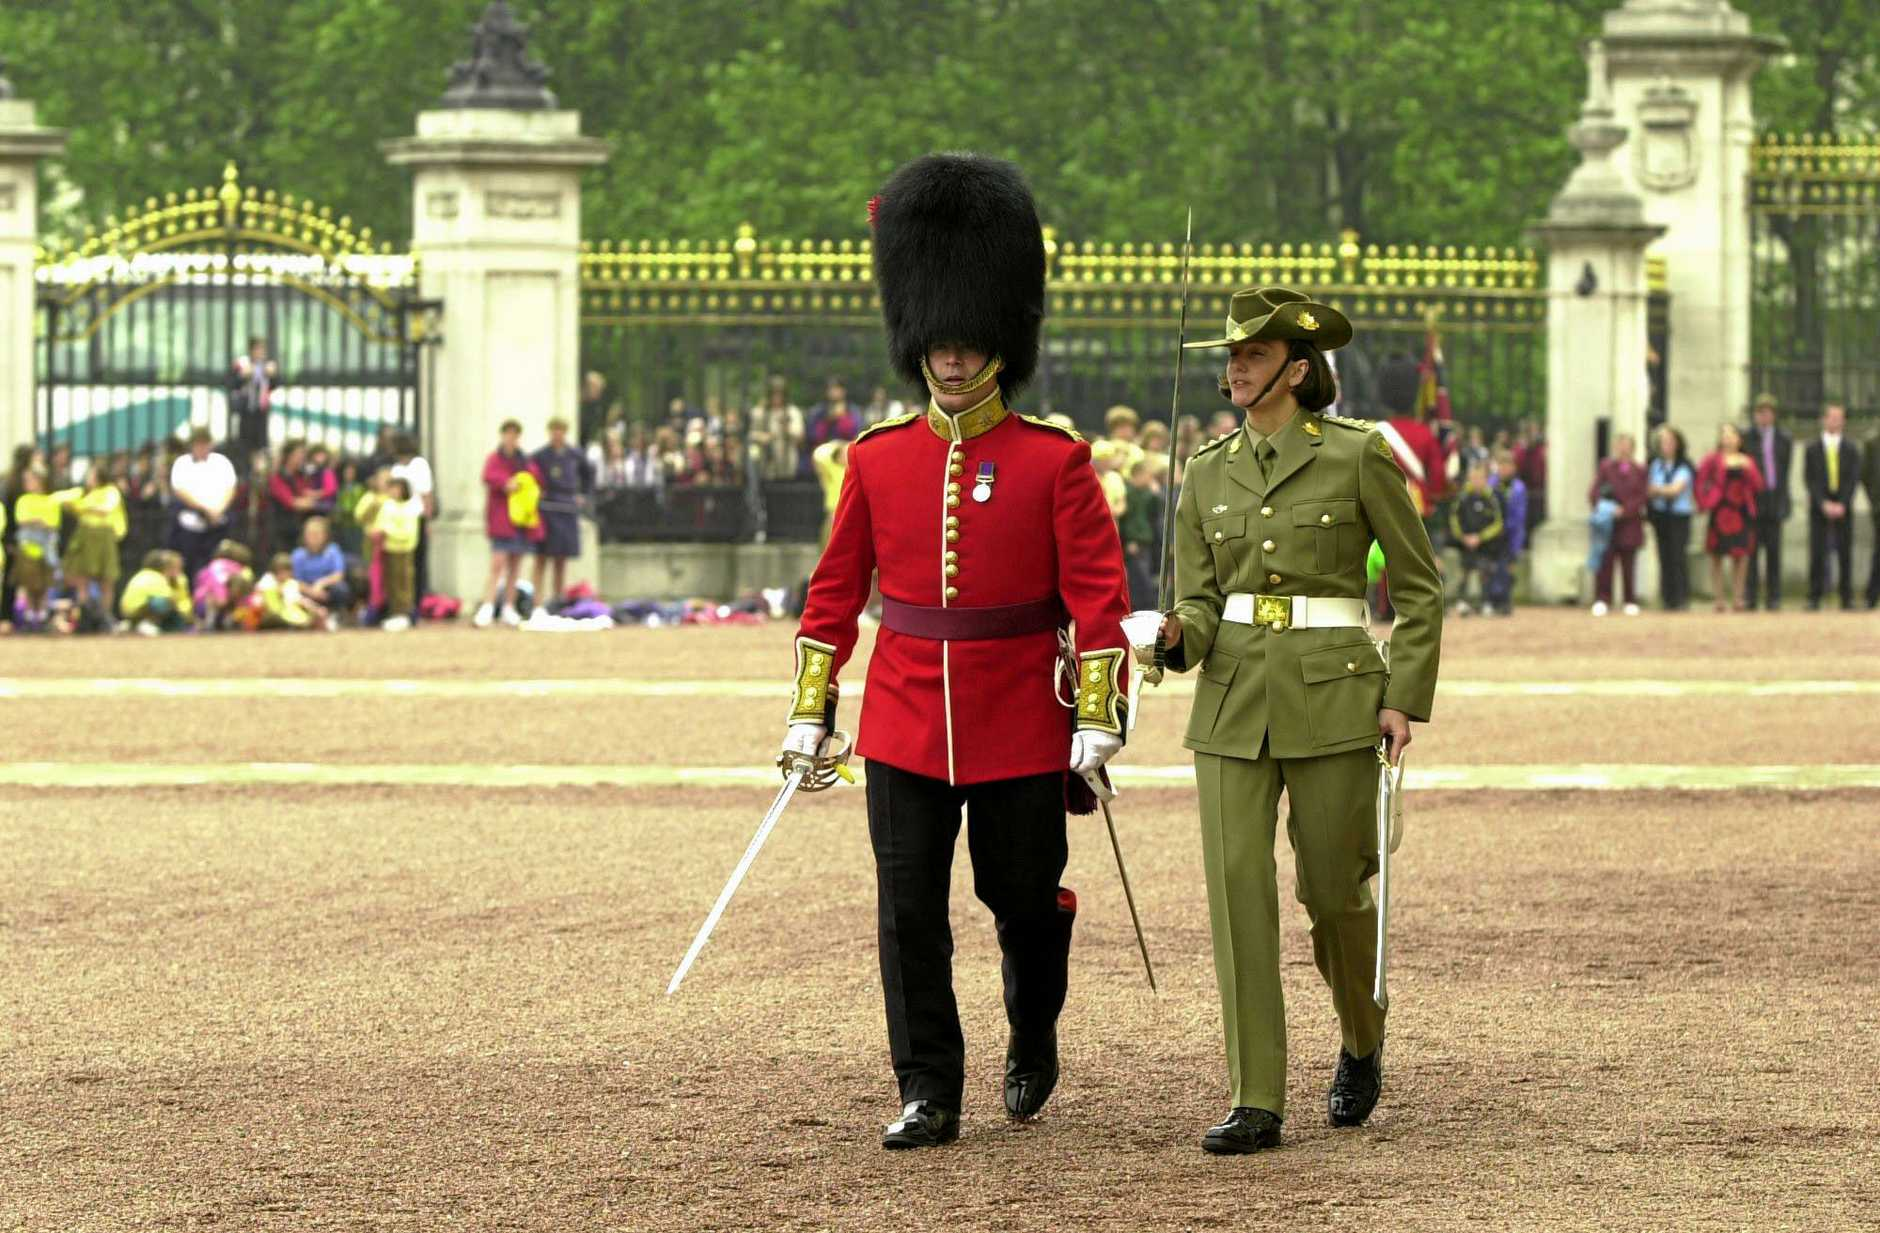 In 2000 Cynthia McDonald was part of the first group of women to guard Buckingham Palace and had the honour of leading the contingent.